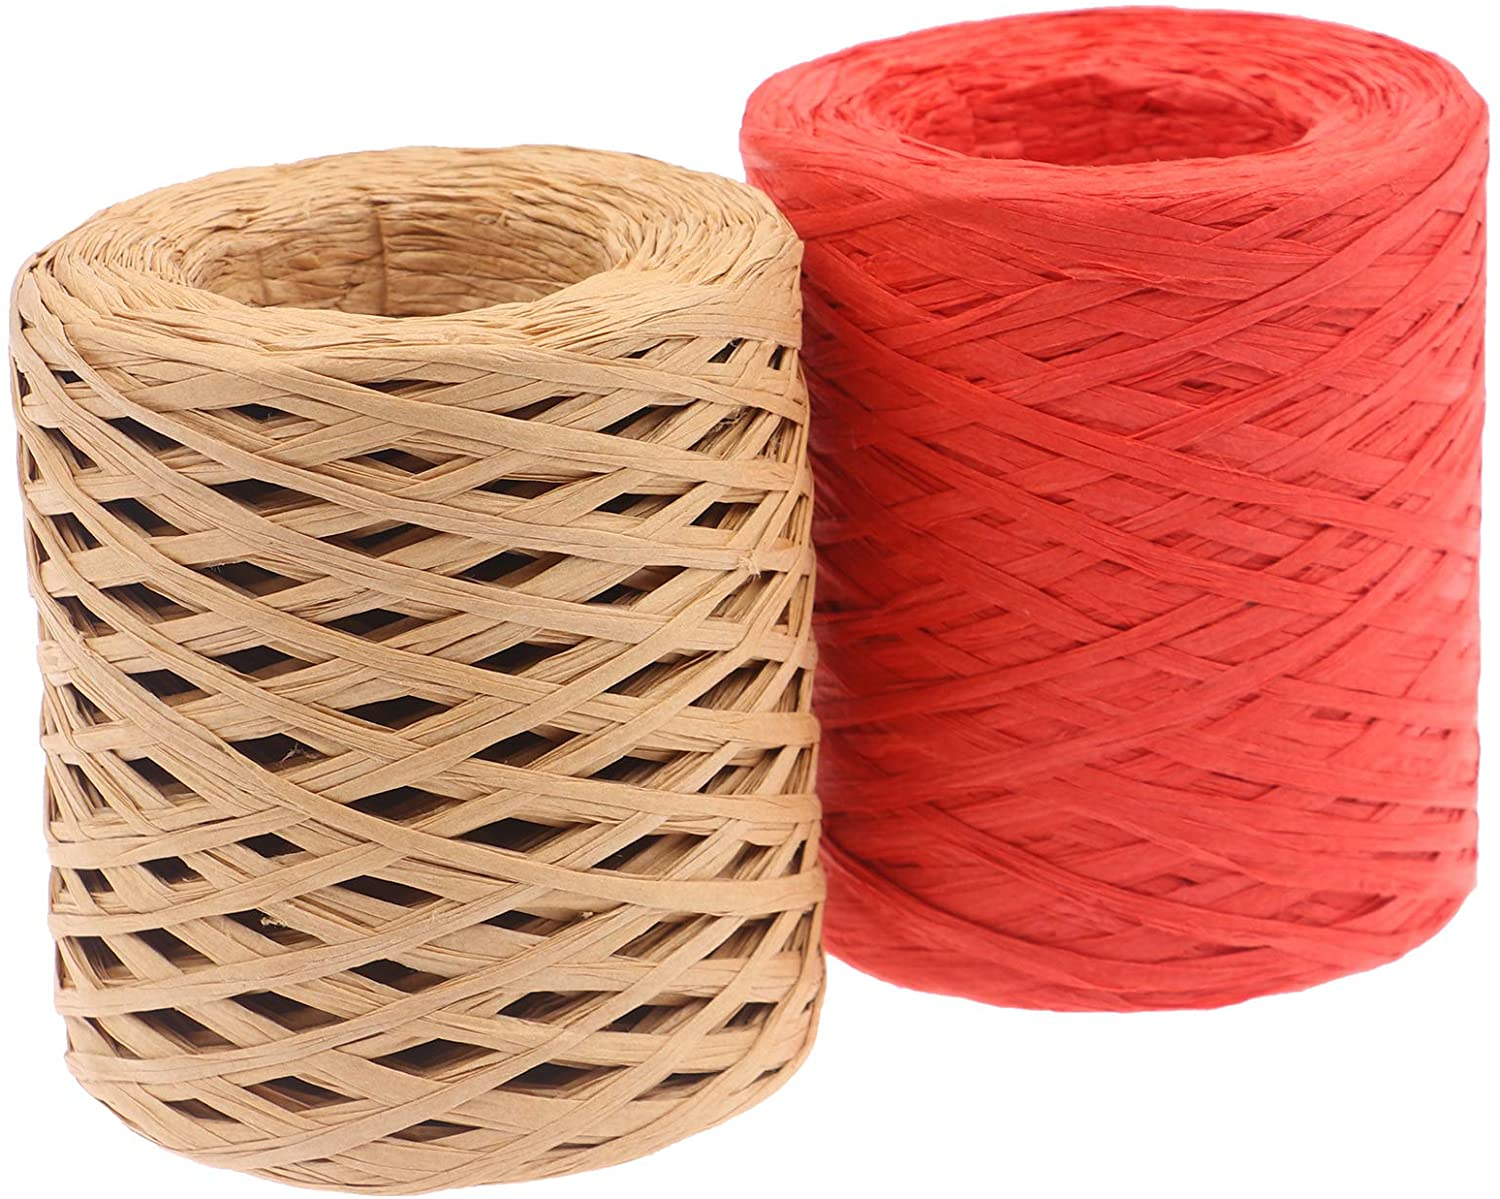 Wusteg 2 Roll Raffia Ribbon Raffia Paper Twine Total 417 Yards Natural Raffia Strings for Packing Set for DIY Craft Gift Box Packing (2 Colors)